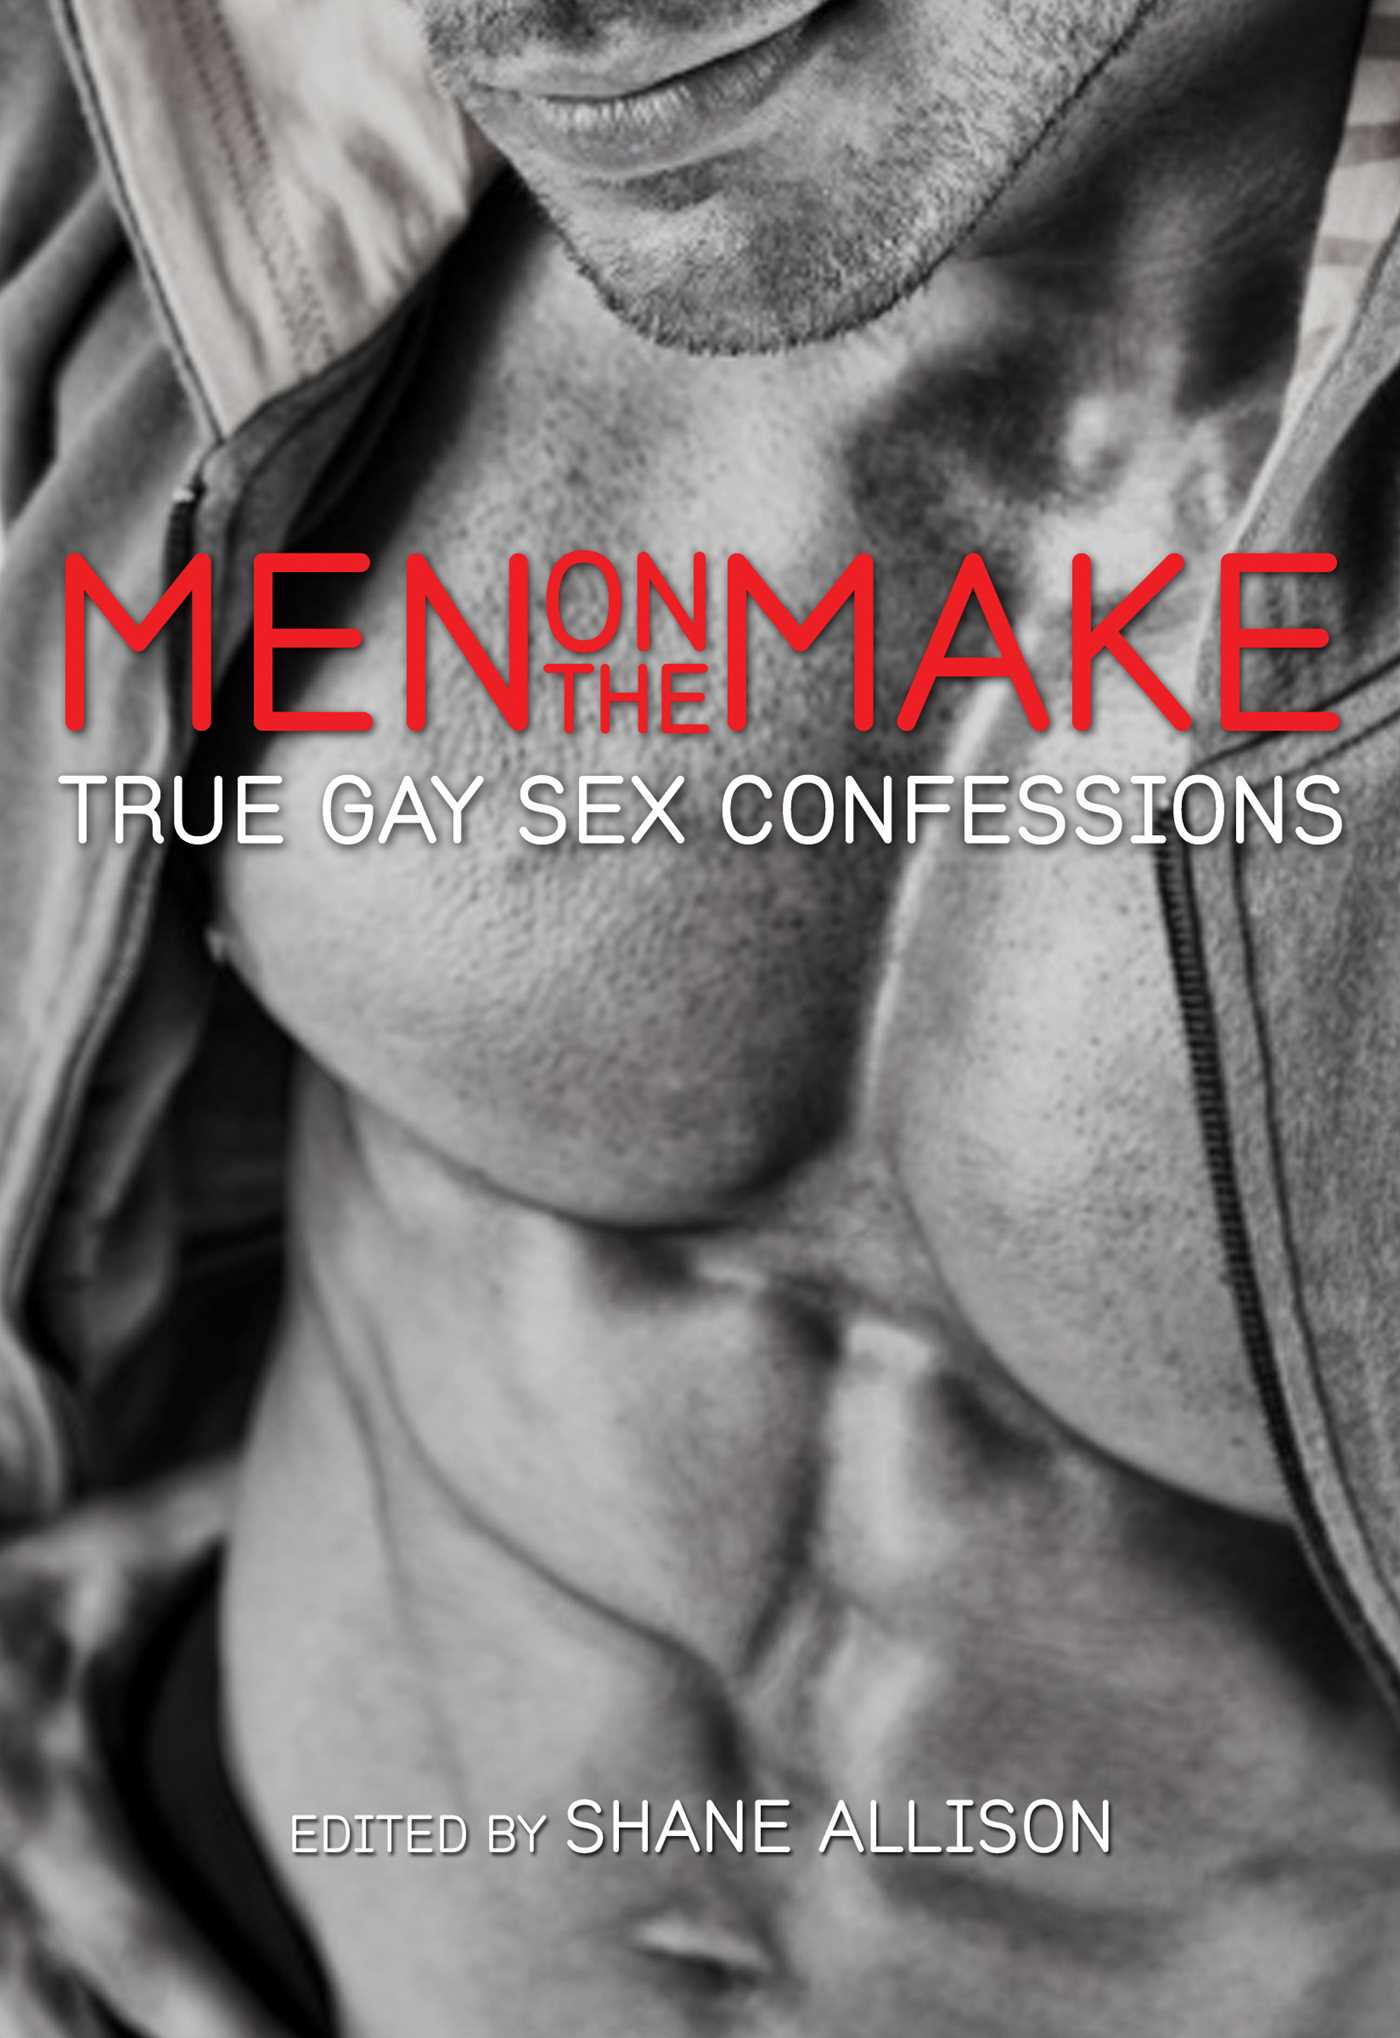 Gay Sexy Download intended for men on the make: true gay sex confessions ebookshane allison